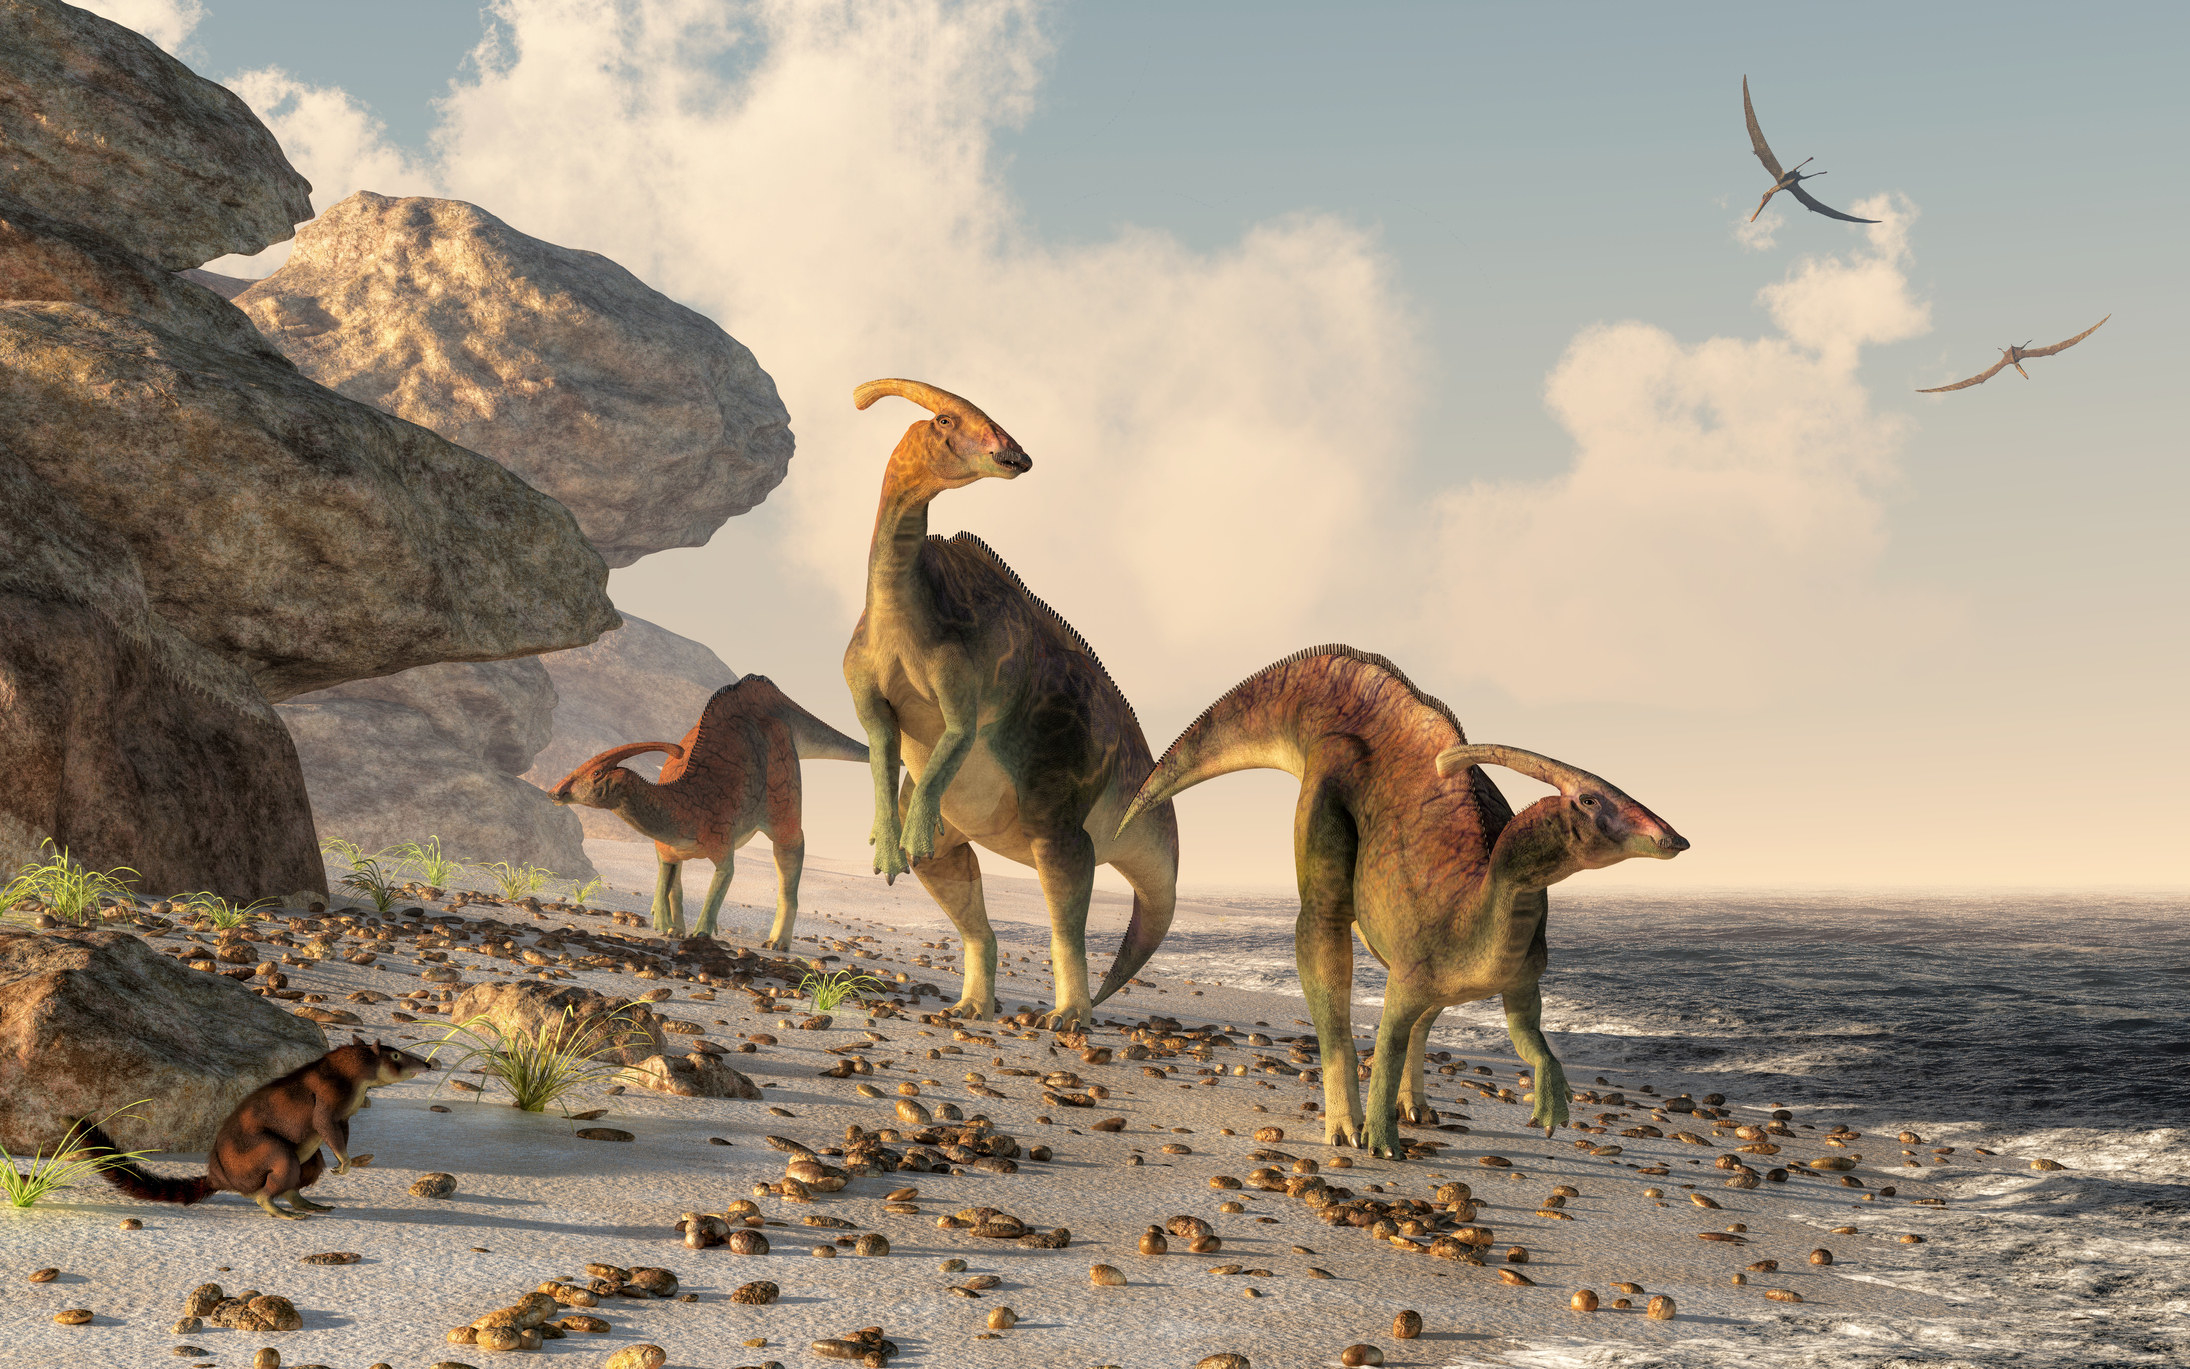 A 3D rendering of dinosaurs on a beach